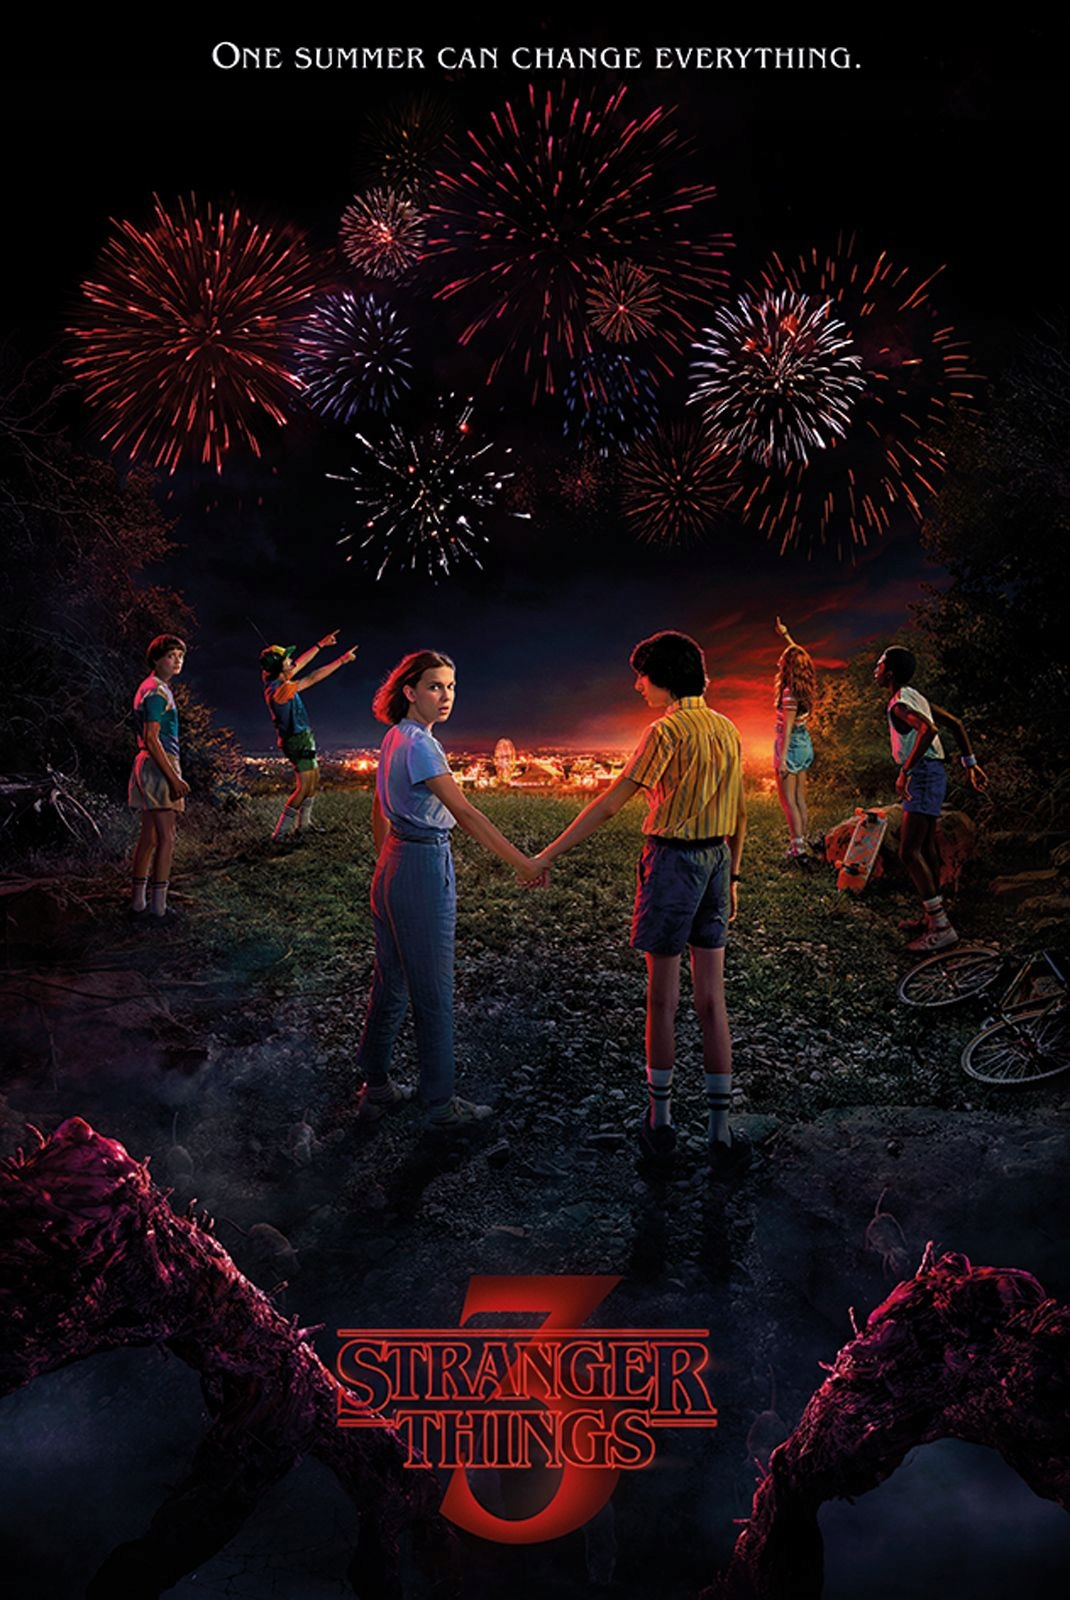 Stranger Things One Summer Plakat 61x915 Cm